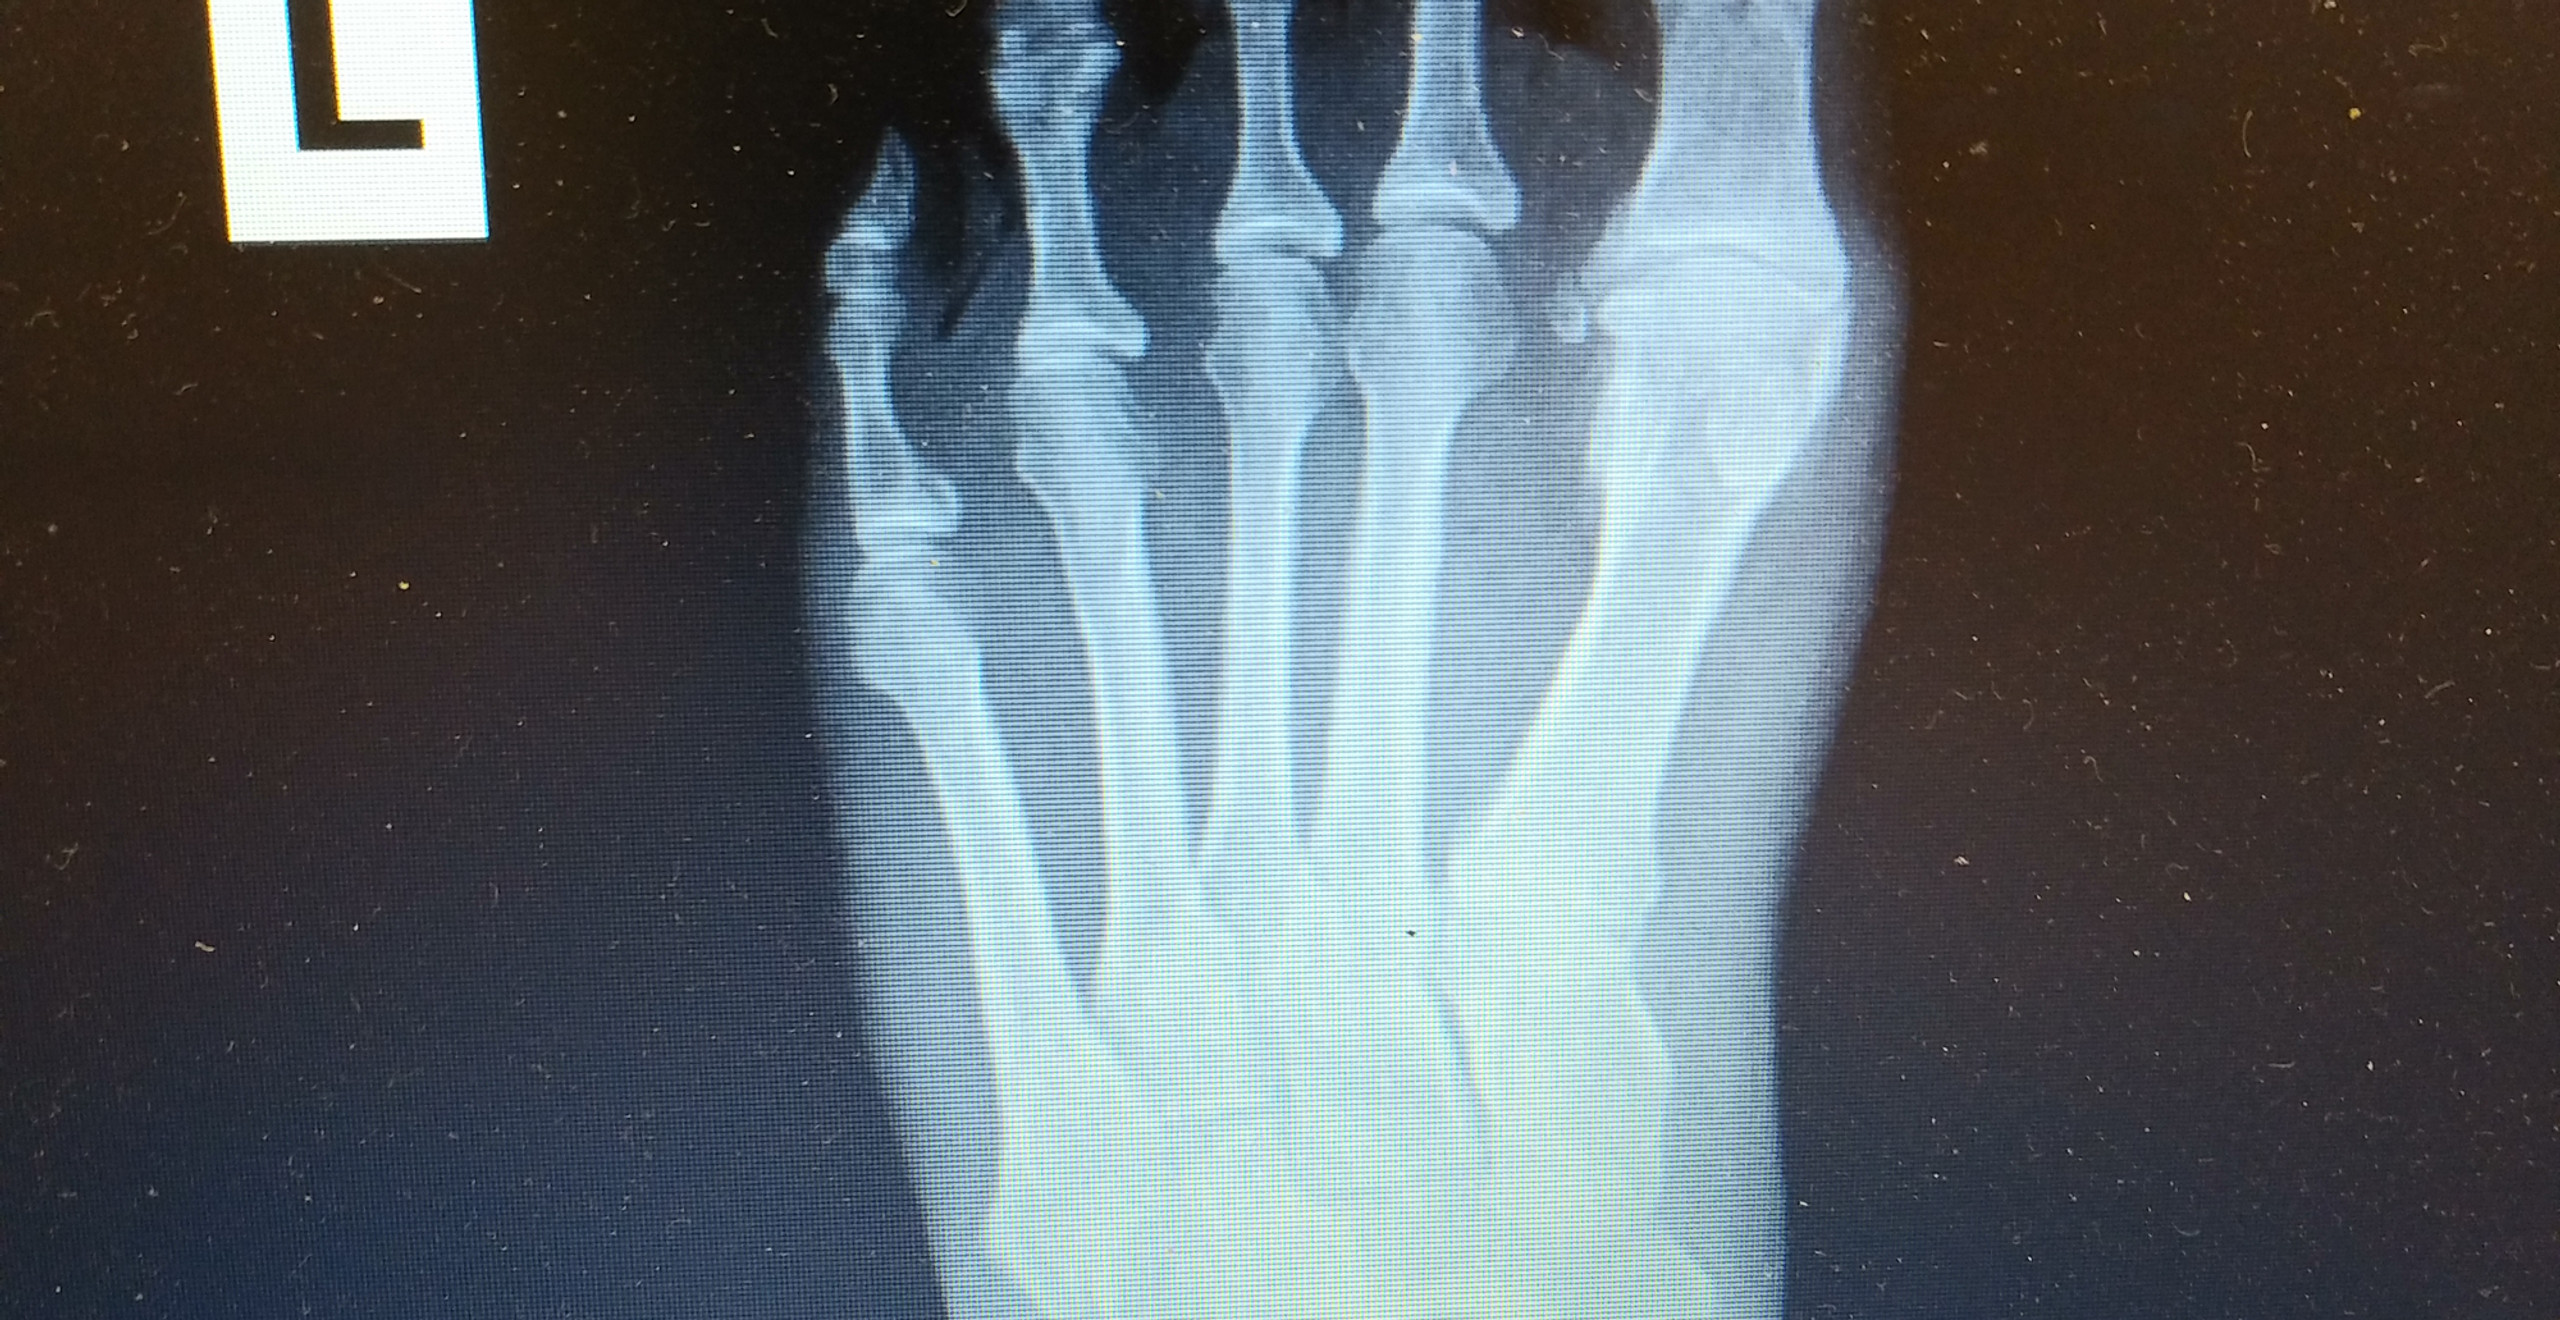 Big toe arthritis with complete loss of joint space